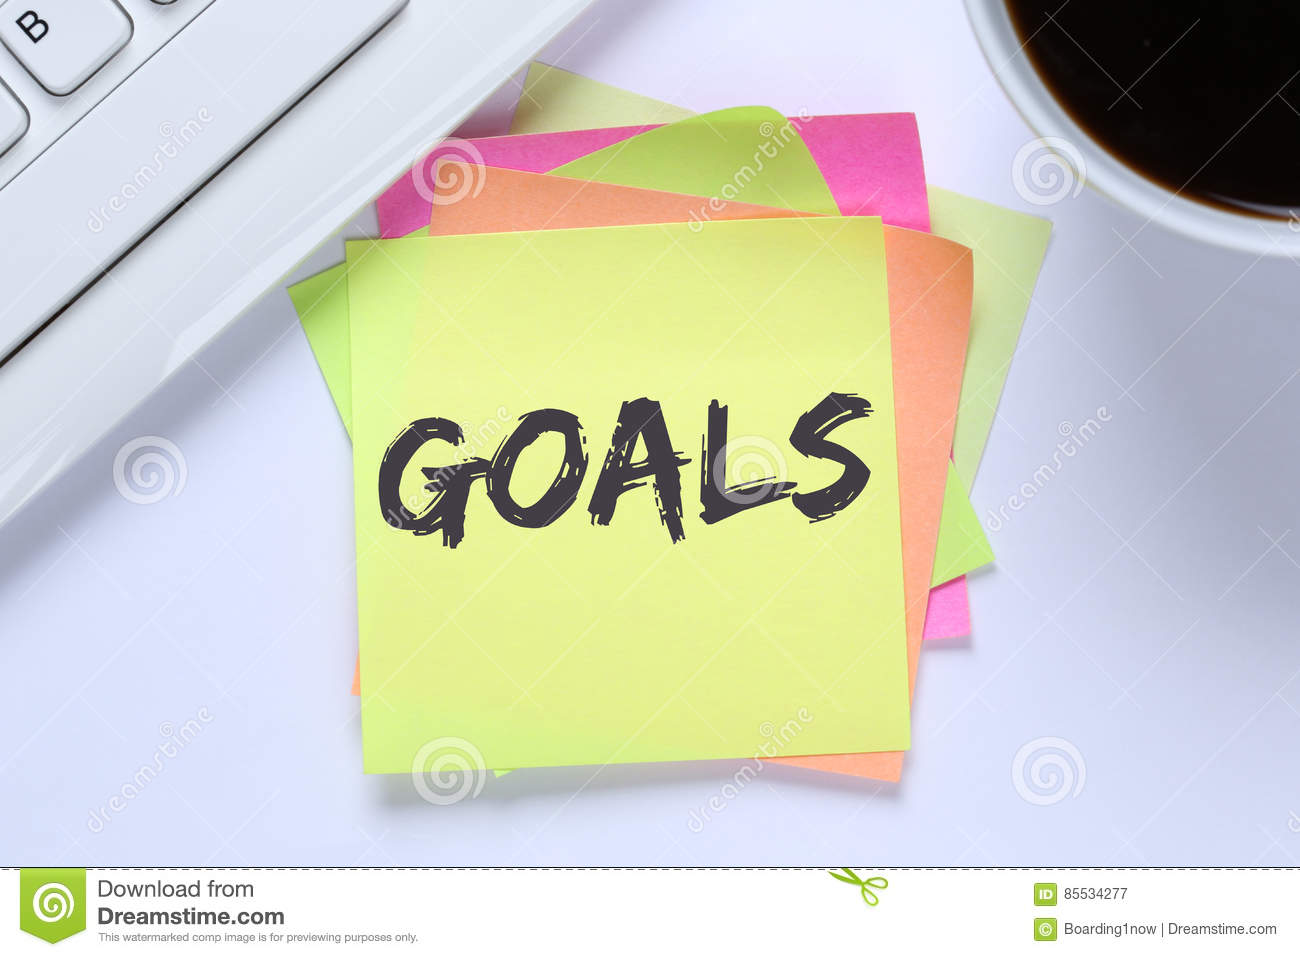 Goal goals to success aspirations and growth desk